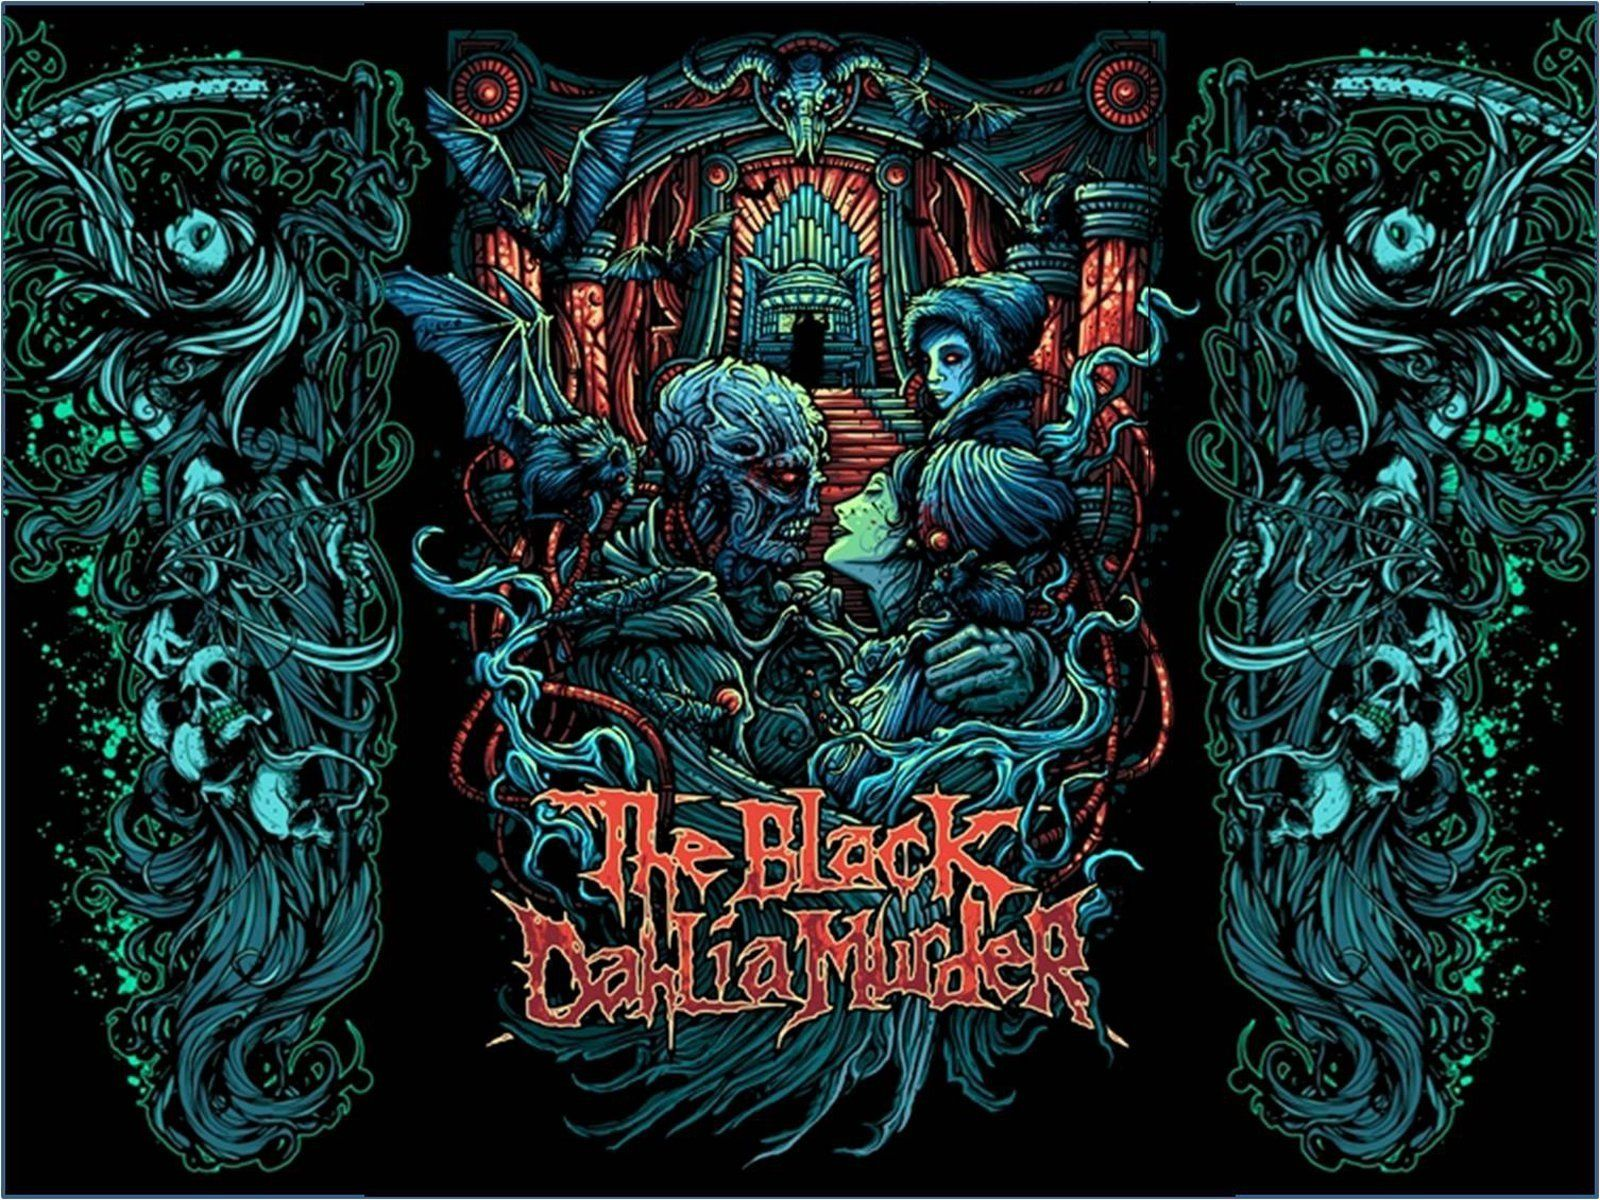 8 The Black Dahlia Murder Hd Wallpapers Backgrounds Wallpaper